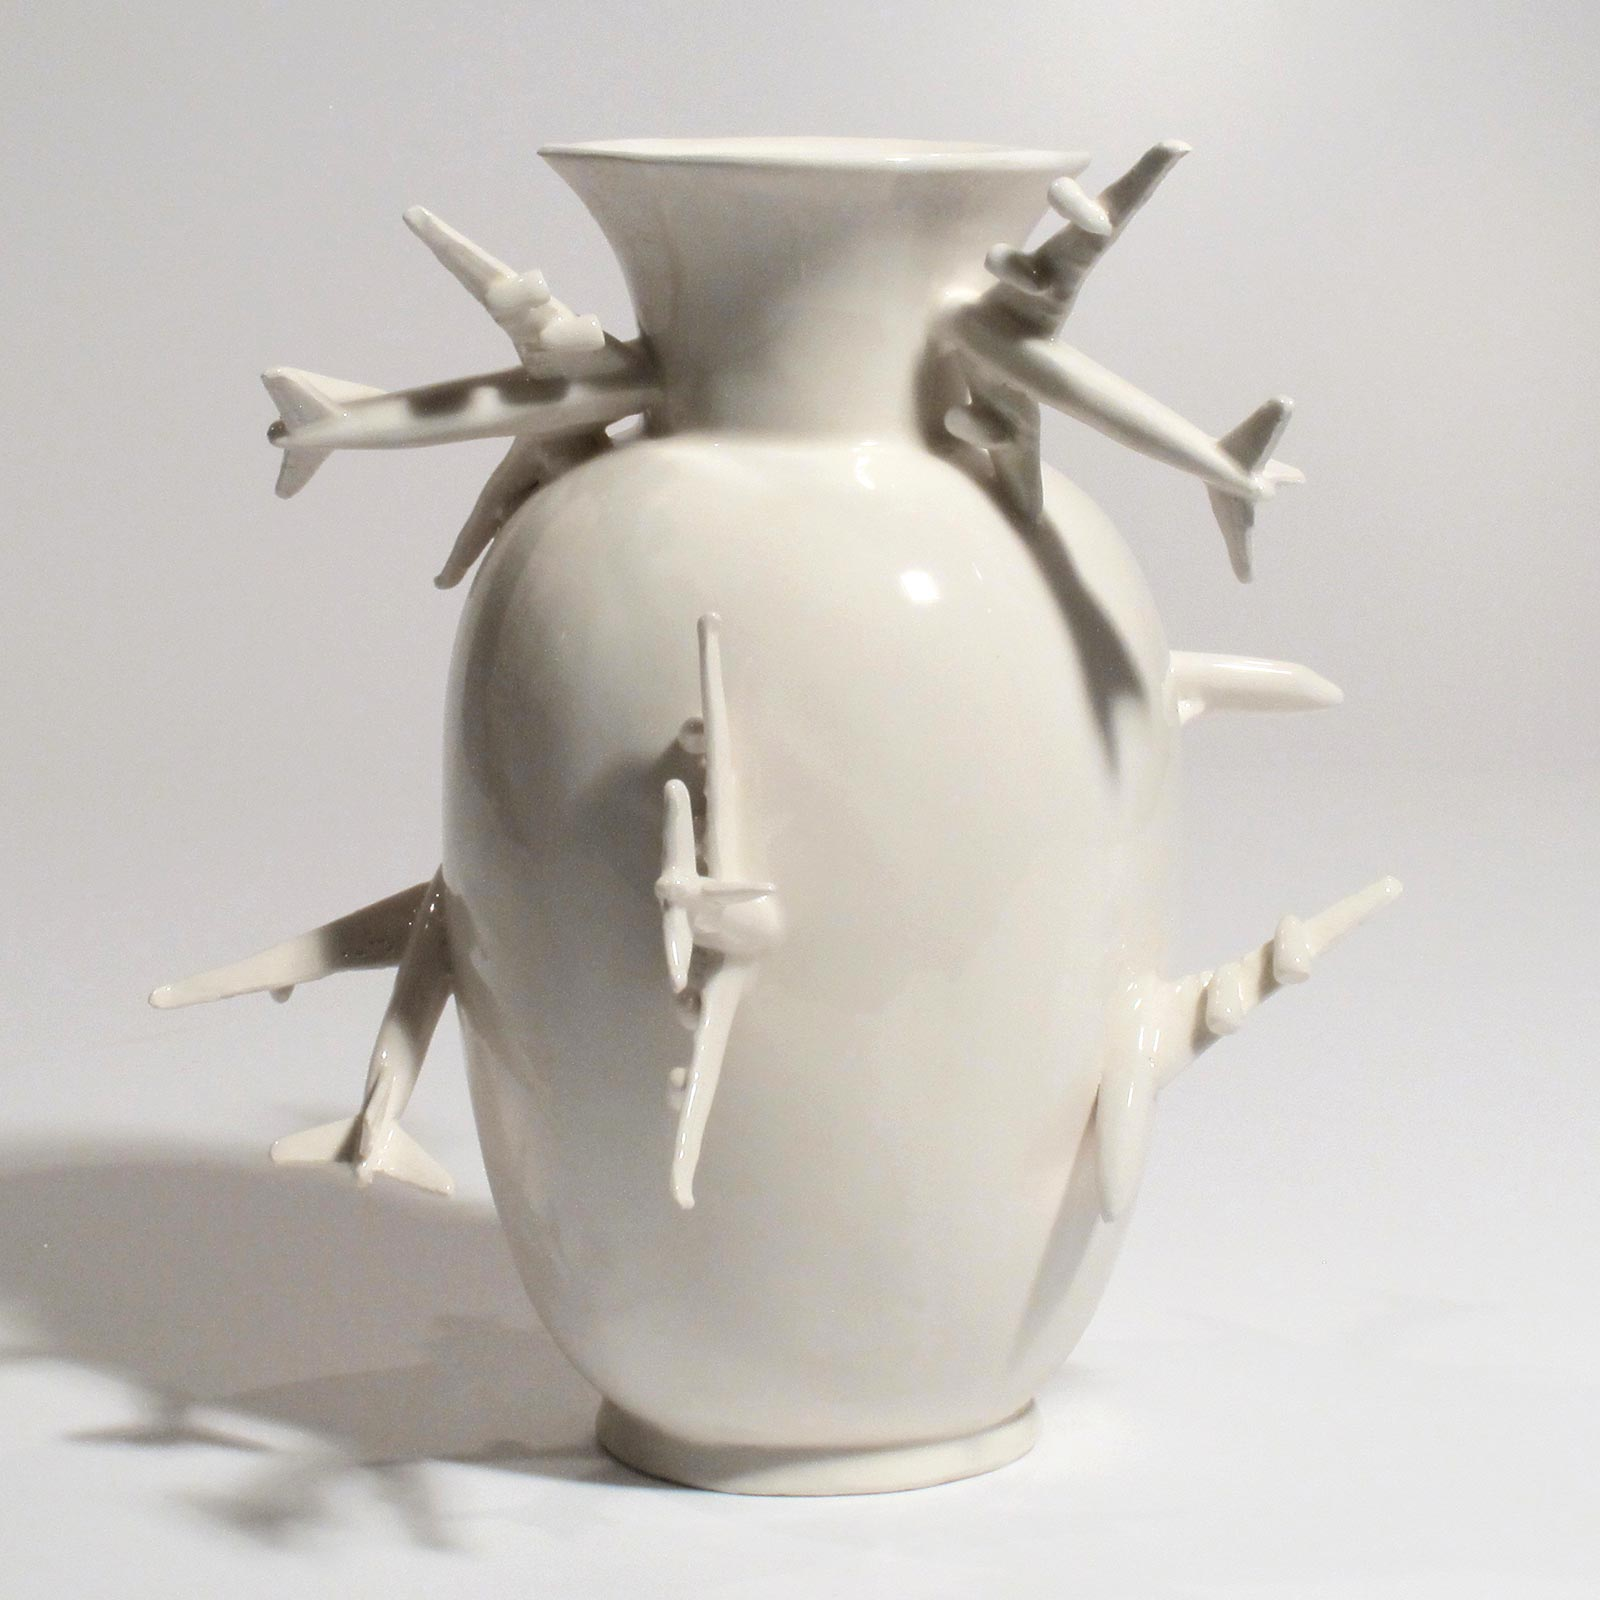 1 Gabriele Mallegni, Break on trough, vaso, ceramica bianca smaltata, pezzo unico- vase, white glazed ceramic, unique piece,2016 , Design